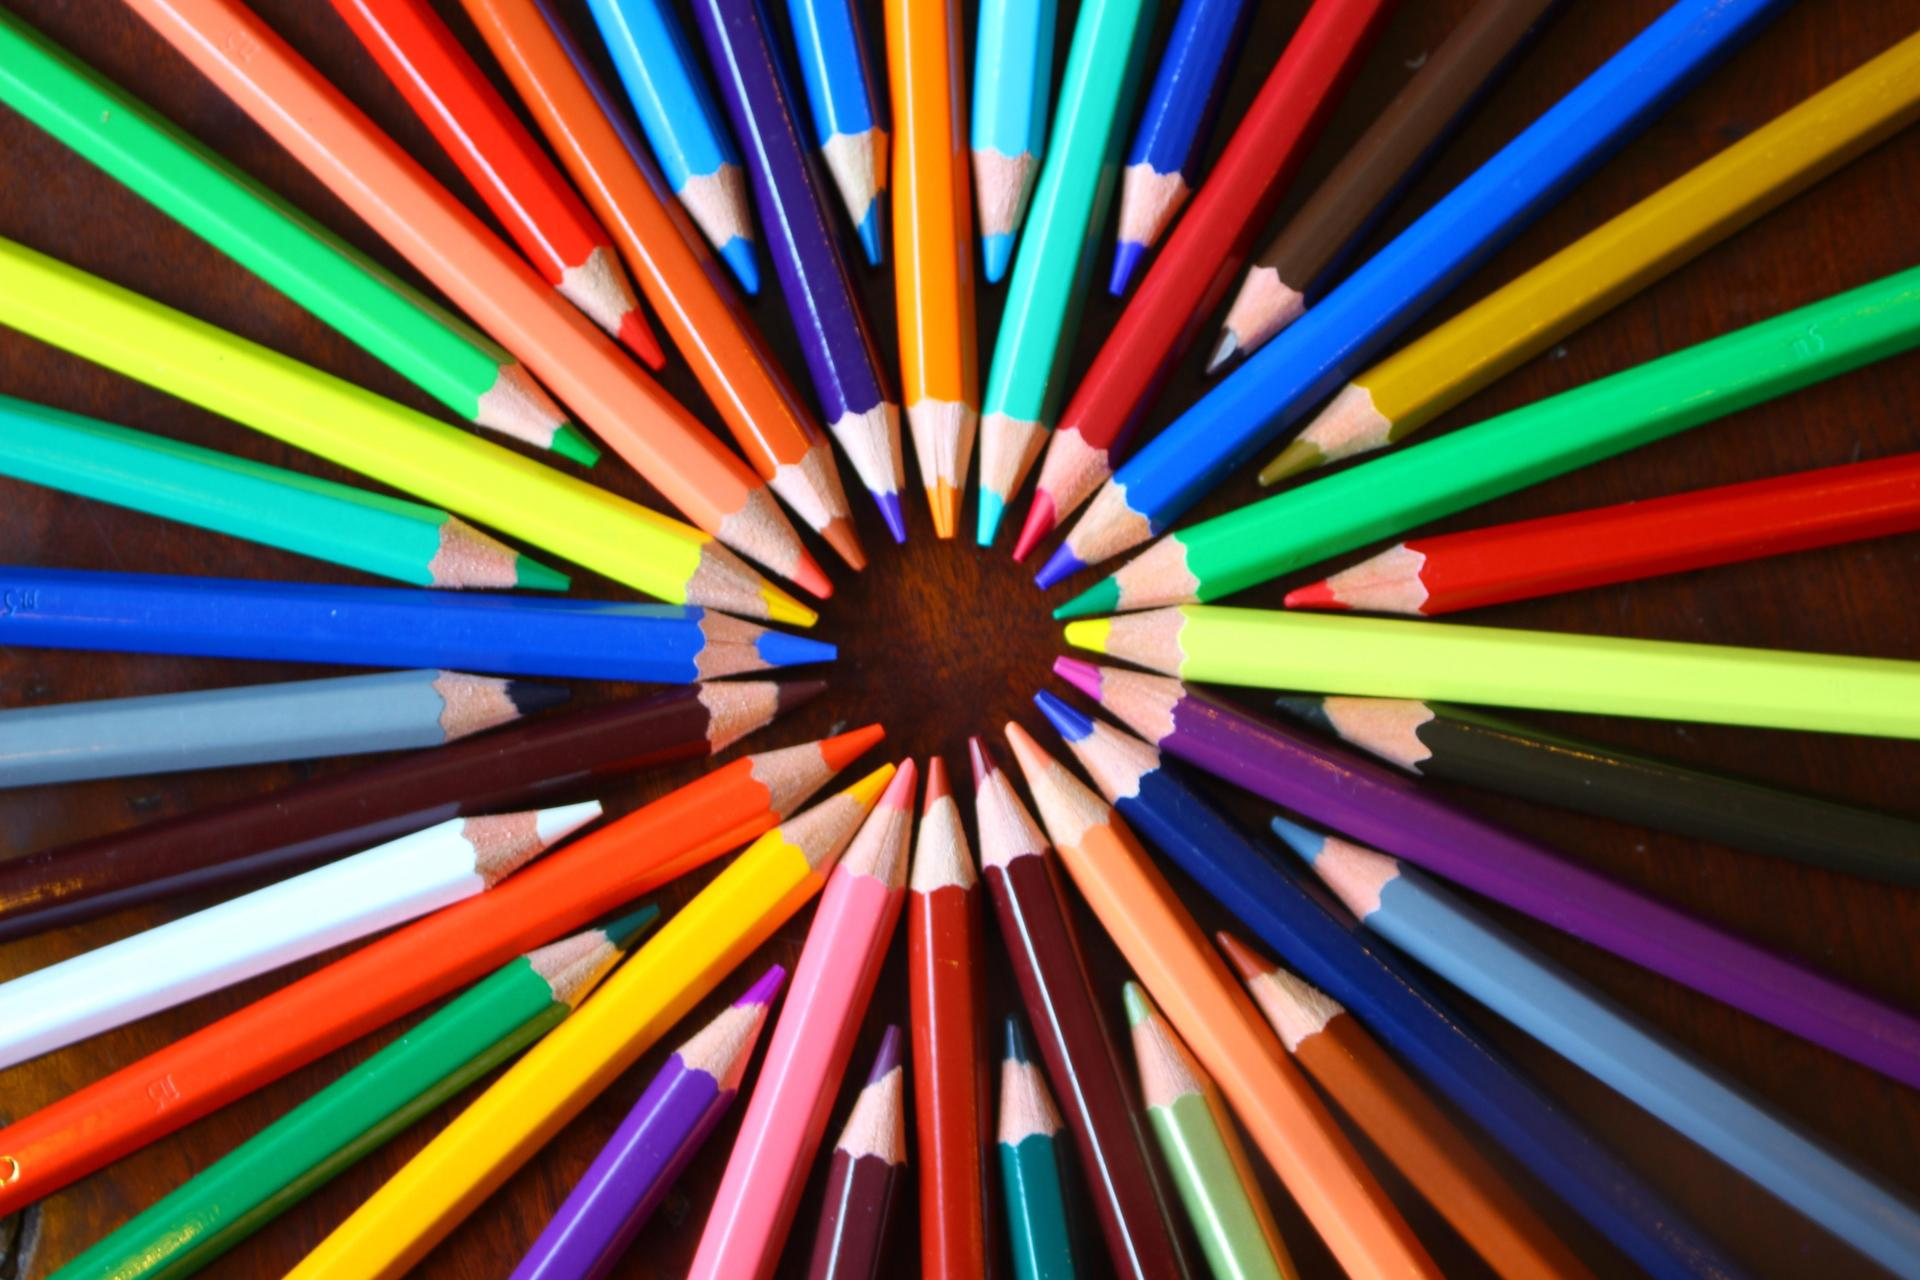 Picture of different color pencils in a circle